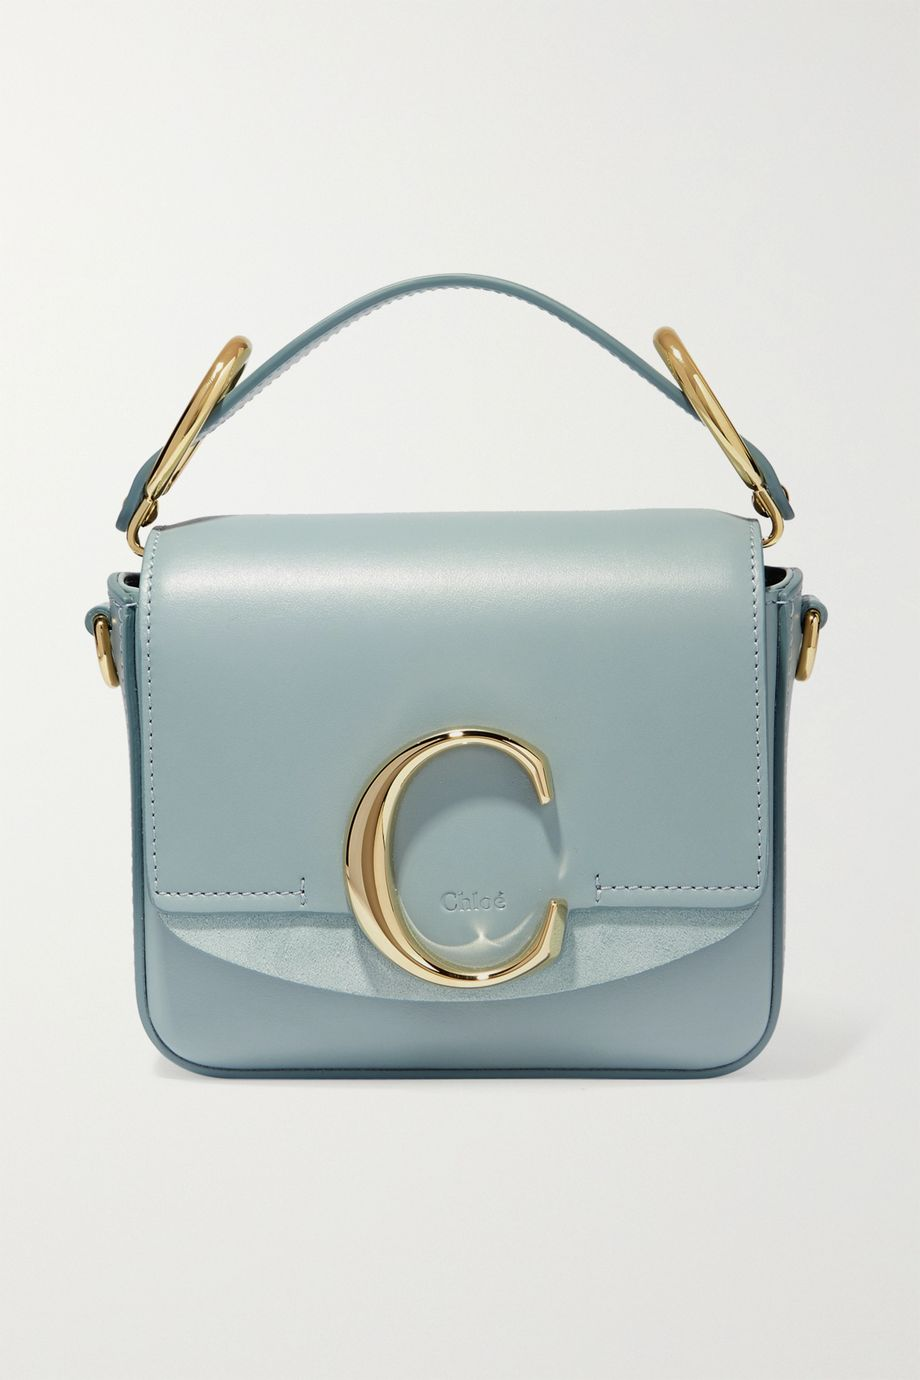 Chloé Chloé C mini suede-trimmed leather shoulder bag